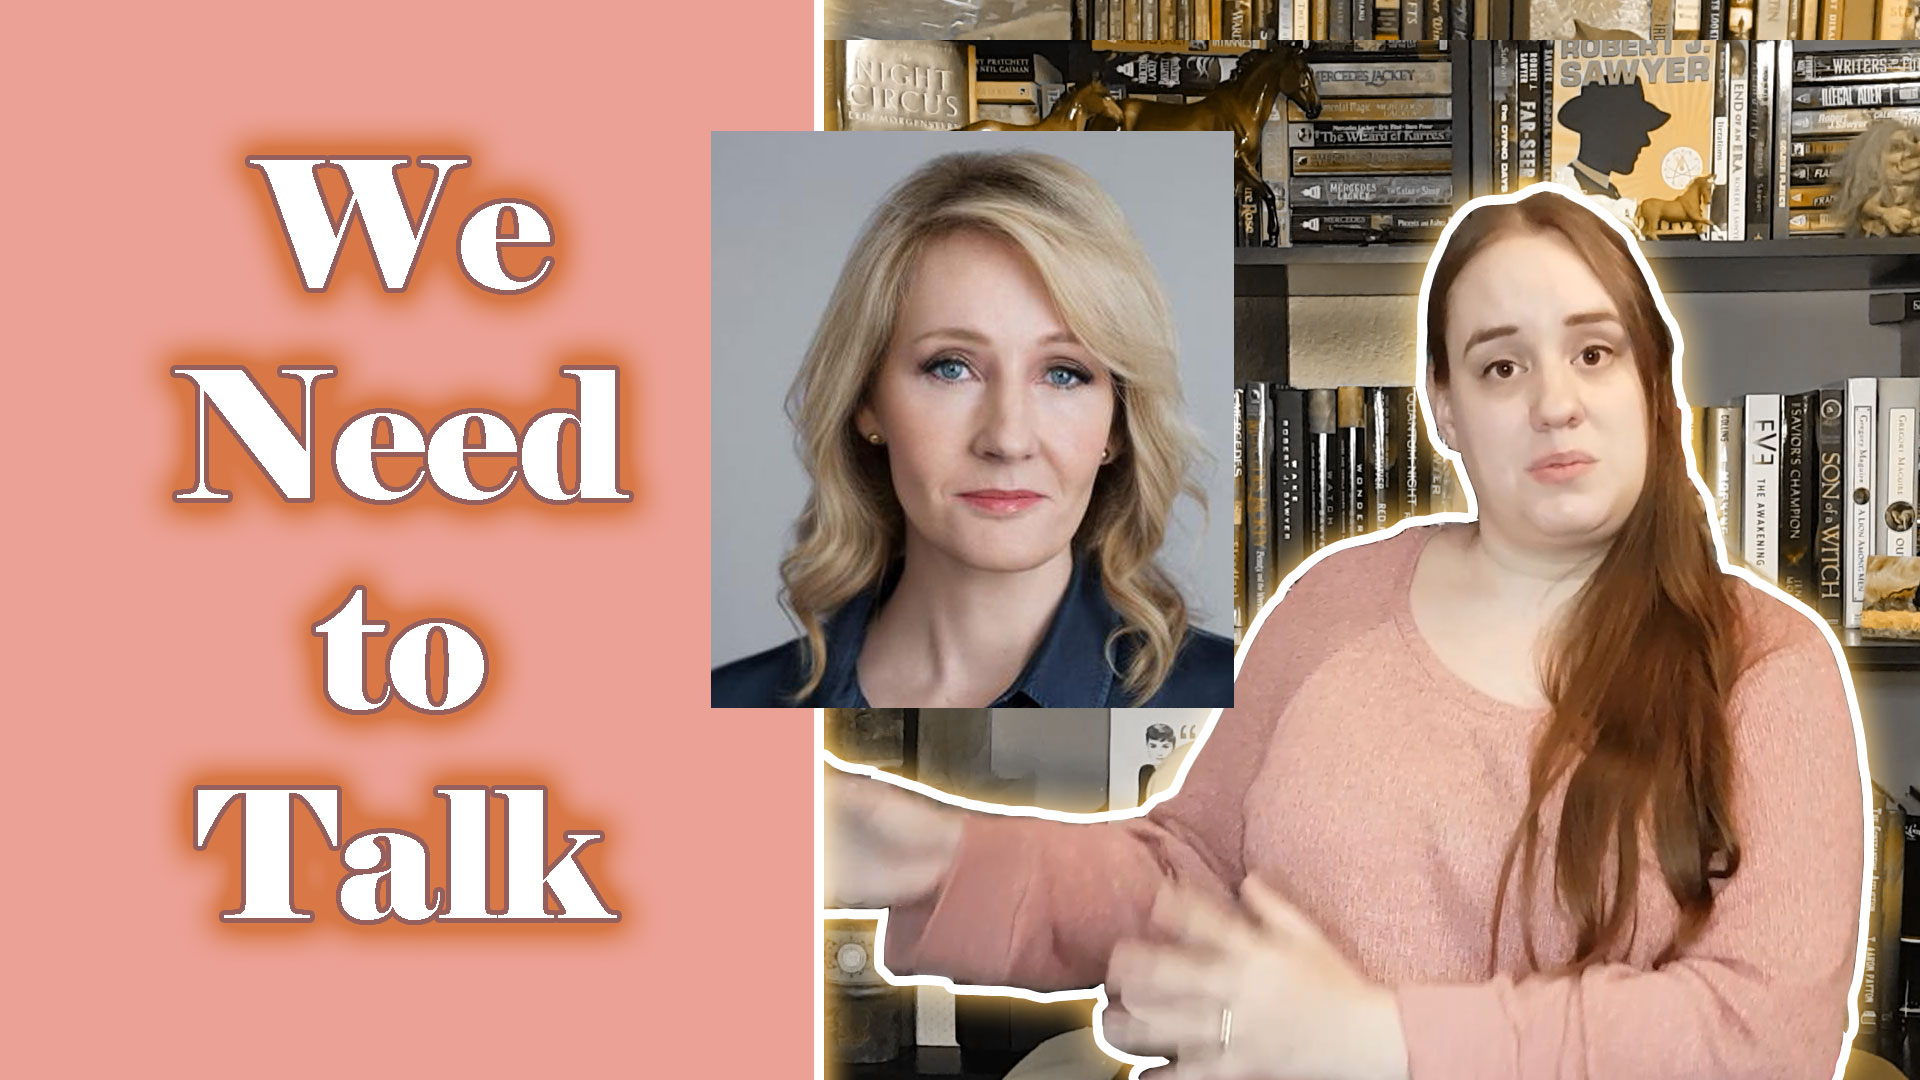 We Need to Talk About Rowling